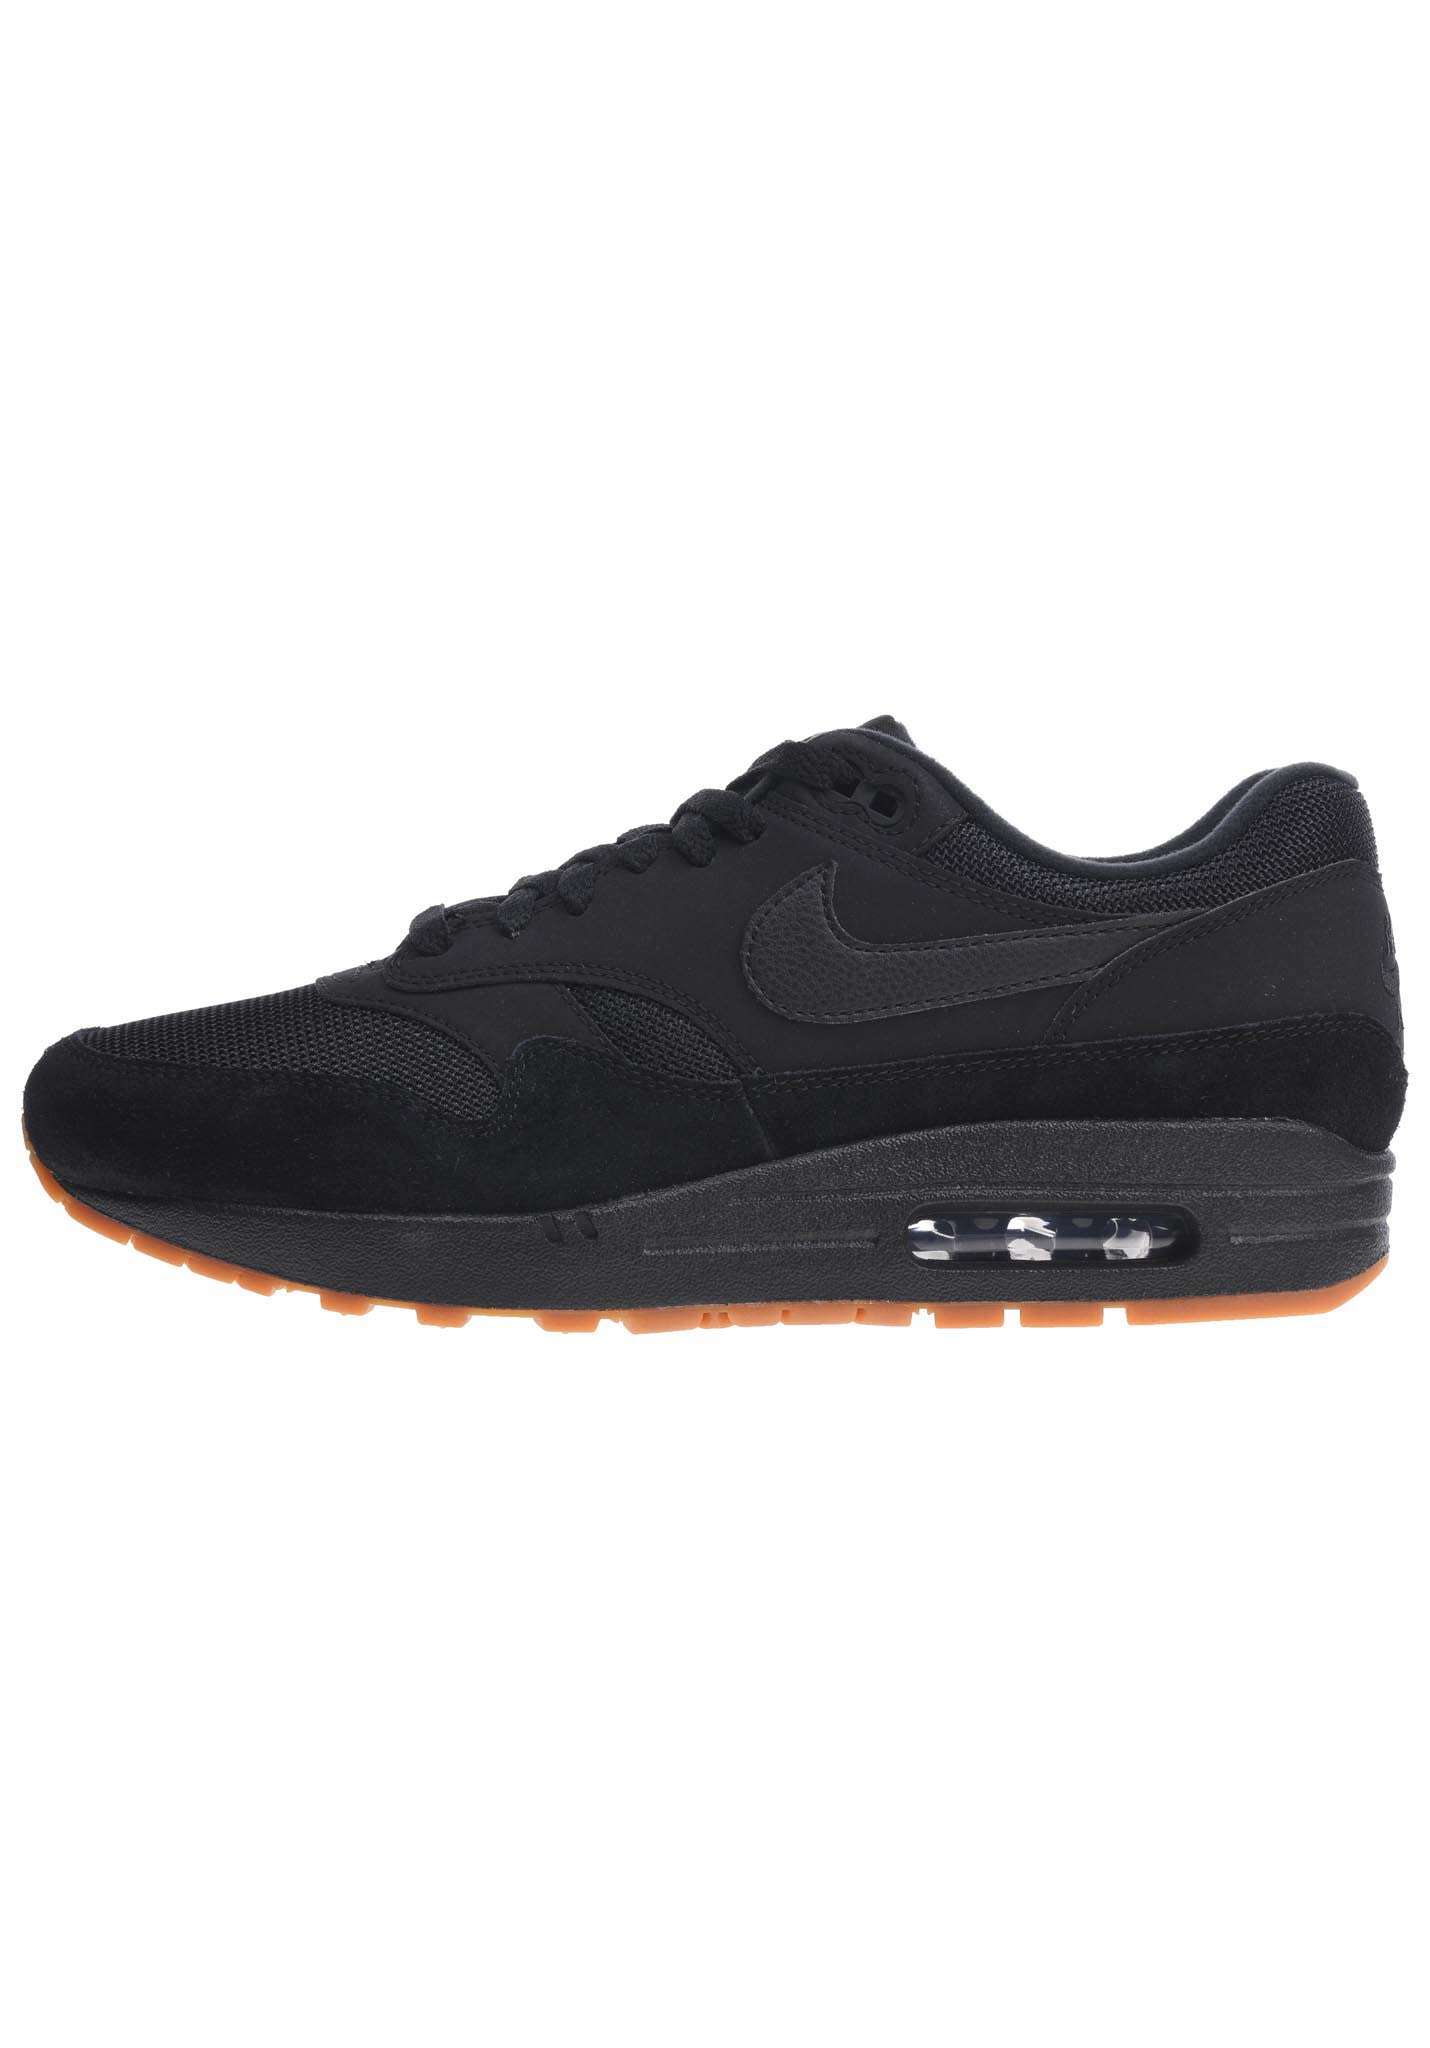 hot sale online c6441 82ff5 NIKE SPORTSWEAR Air Max 1 - Sneaker für Herren - Schwarz - Planet Sports